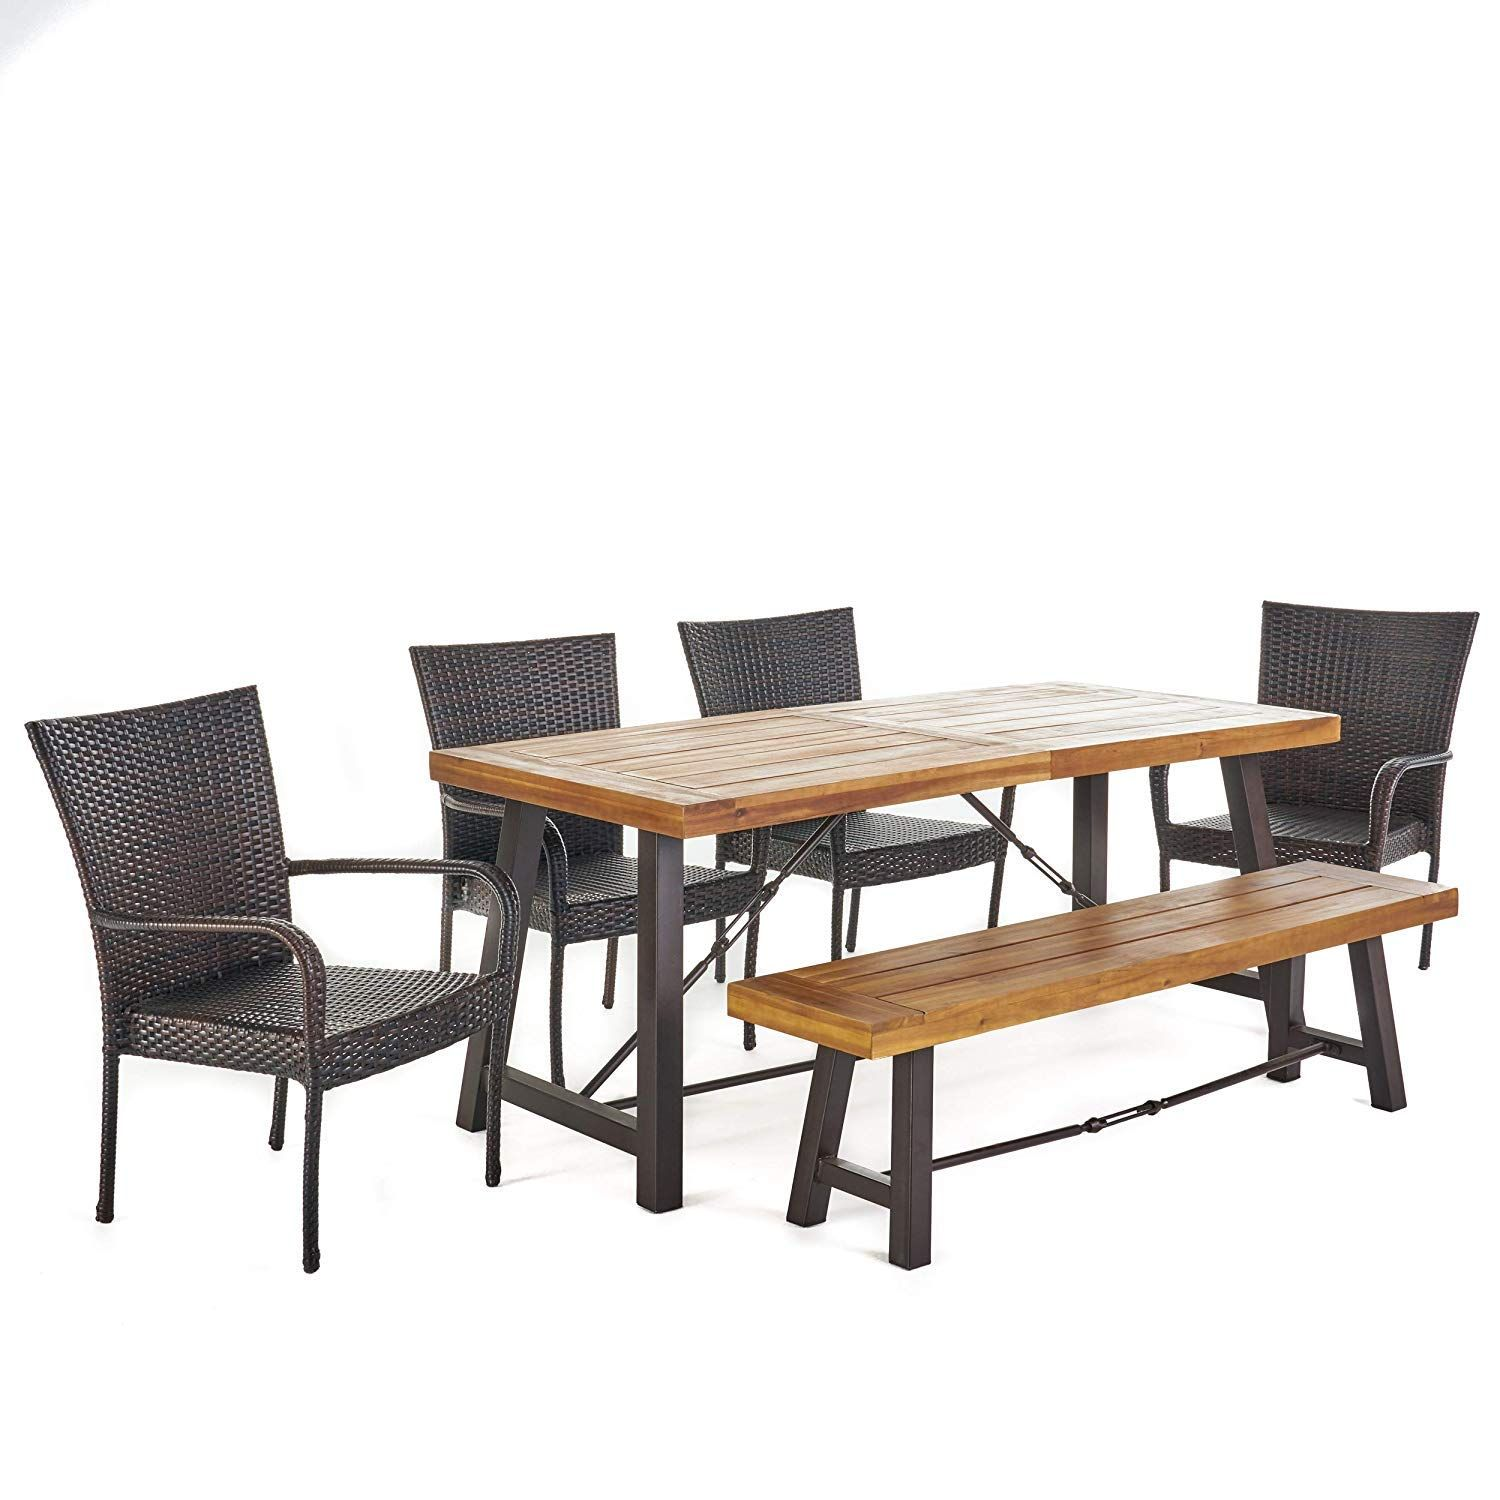 We Furniture All Weather Patio Dining Bench Grey